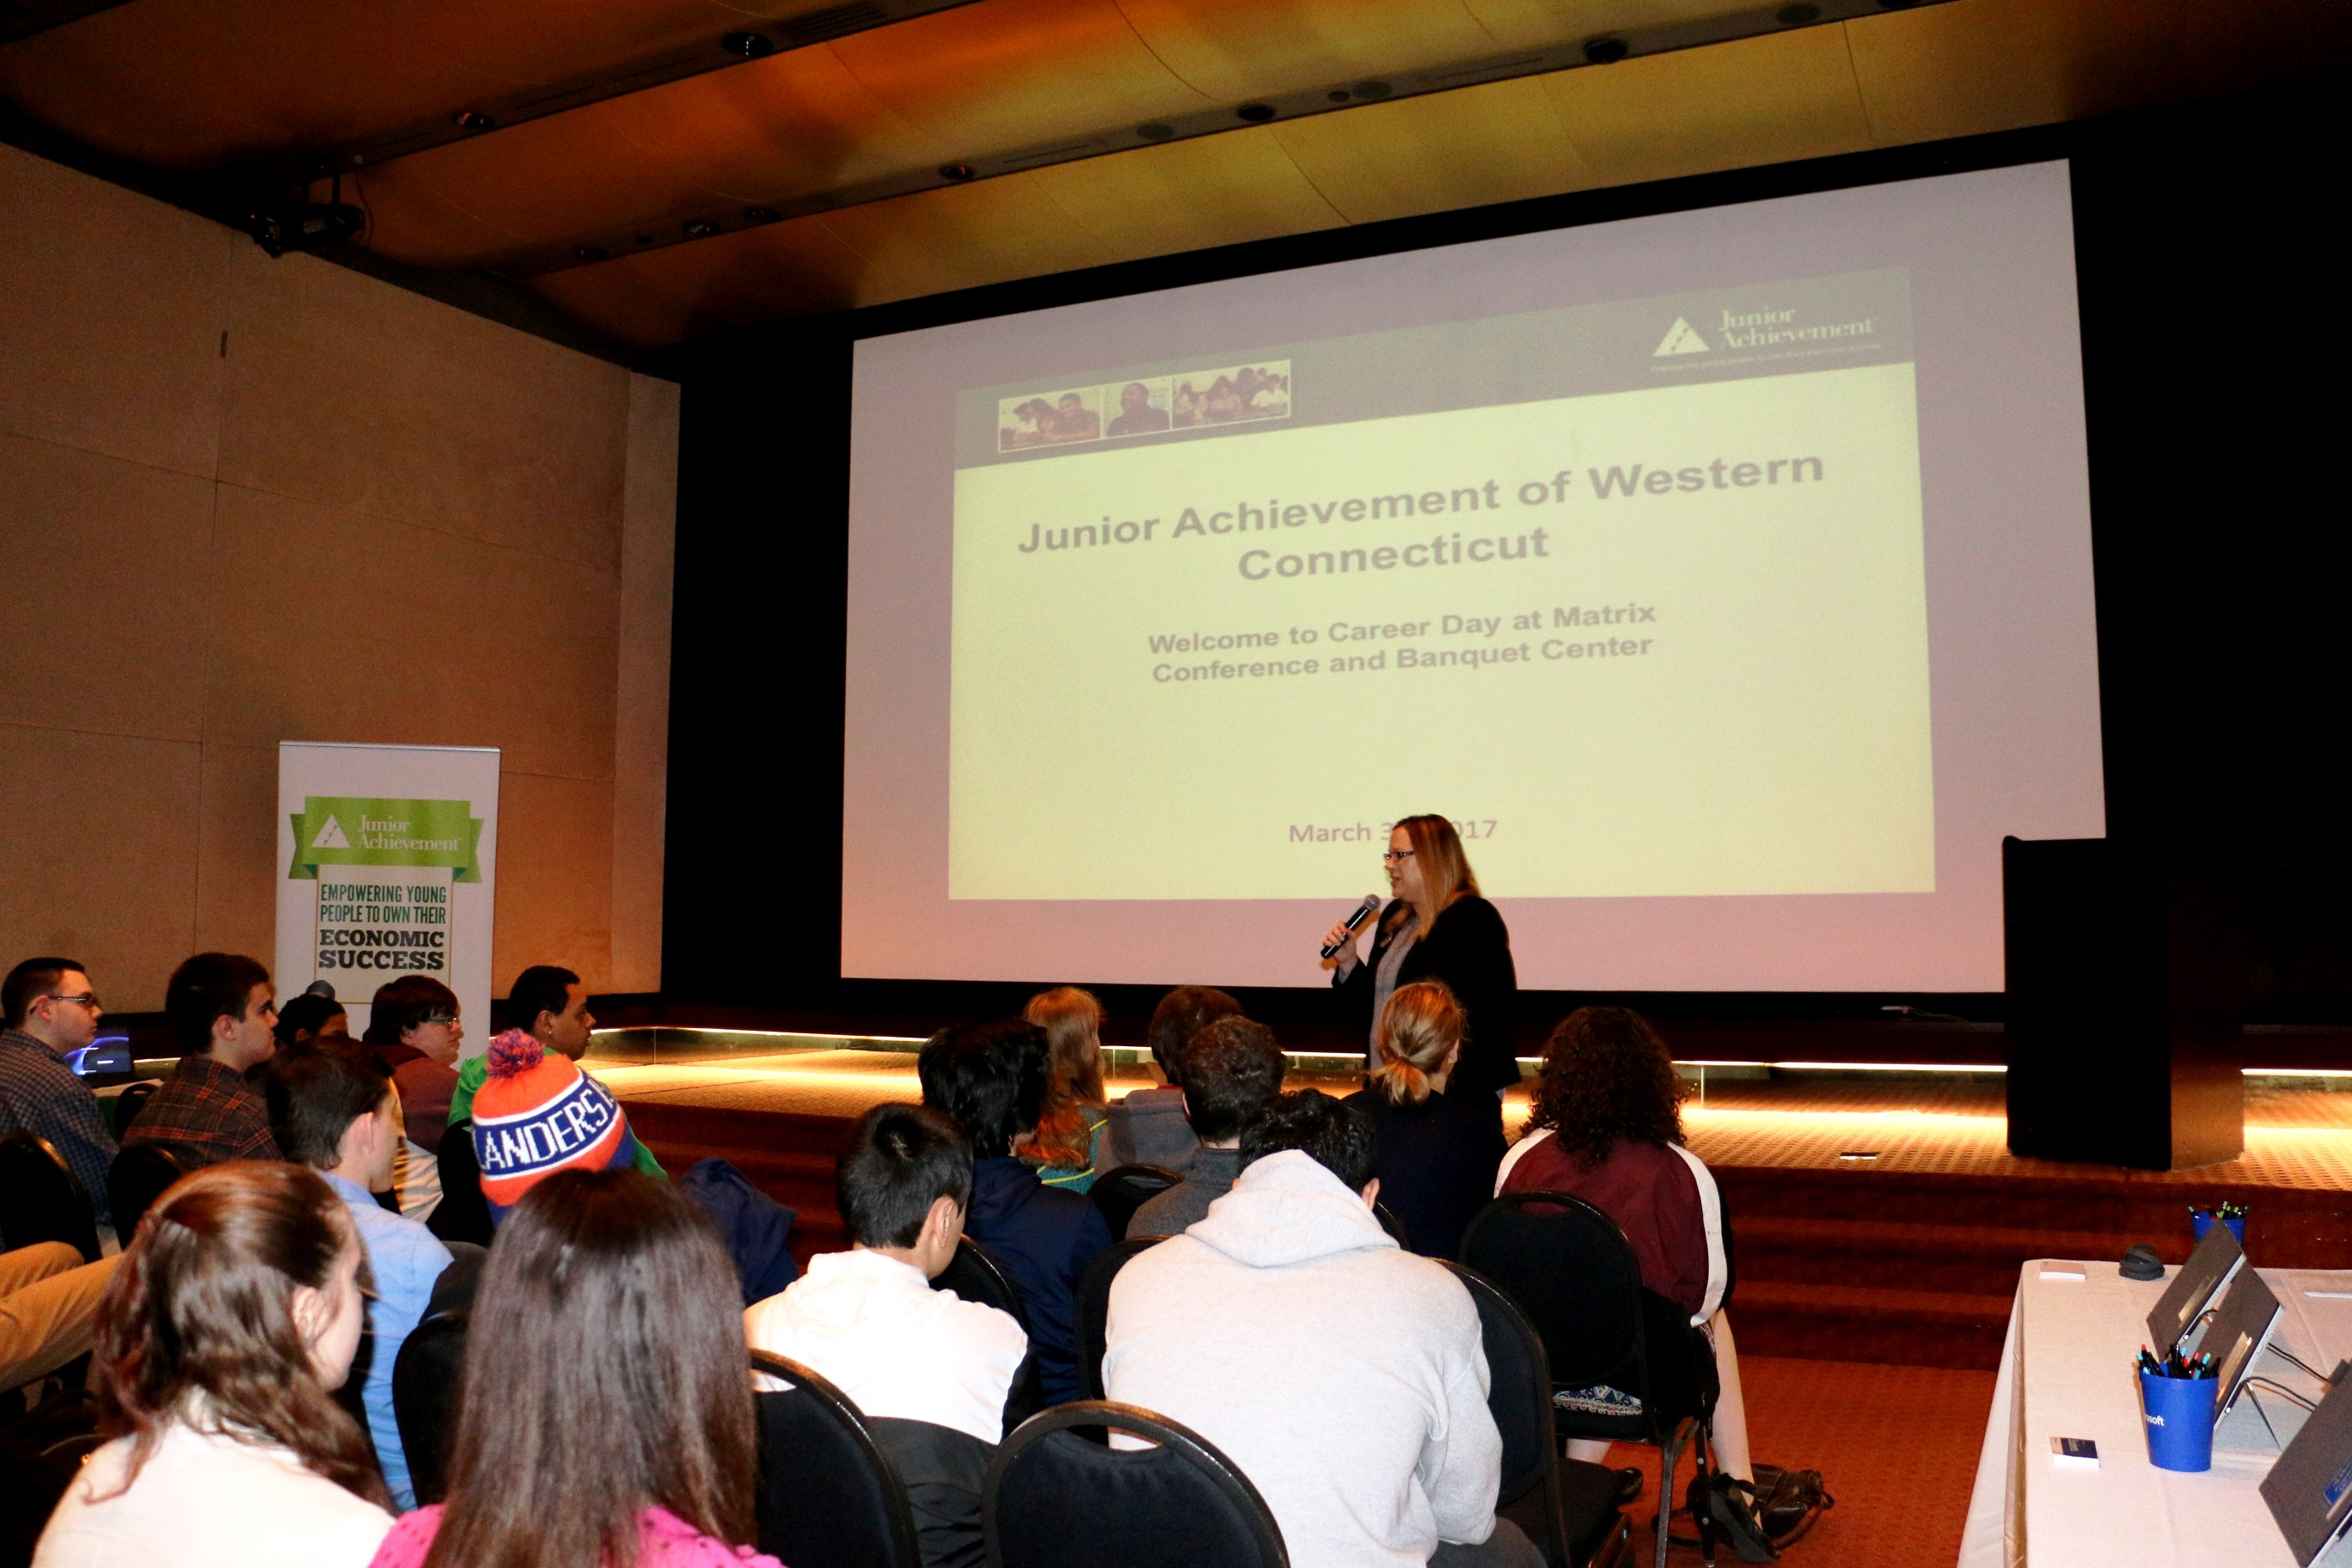 praxair sponsors junior achievement career day in danbury